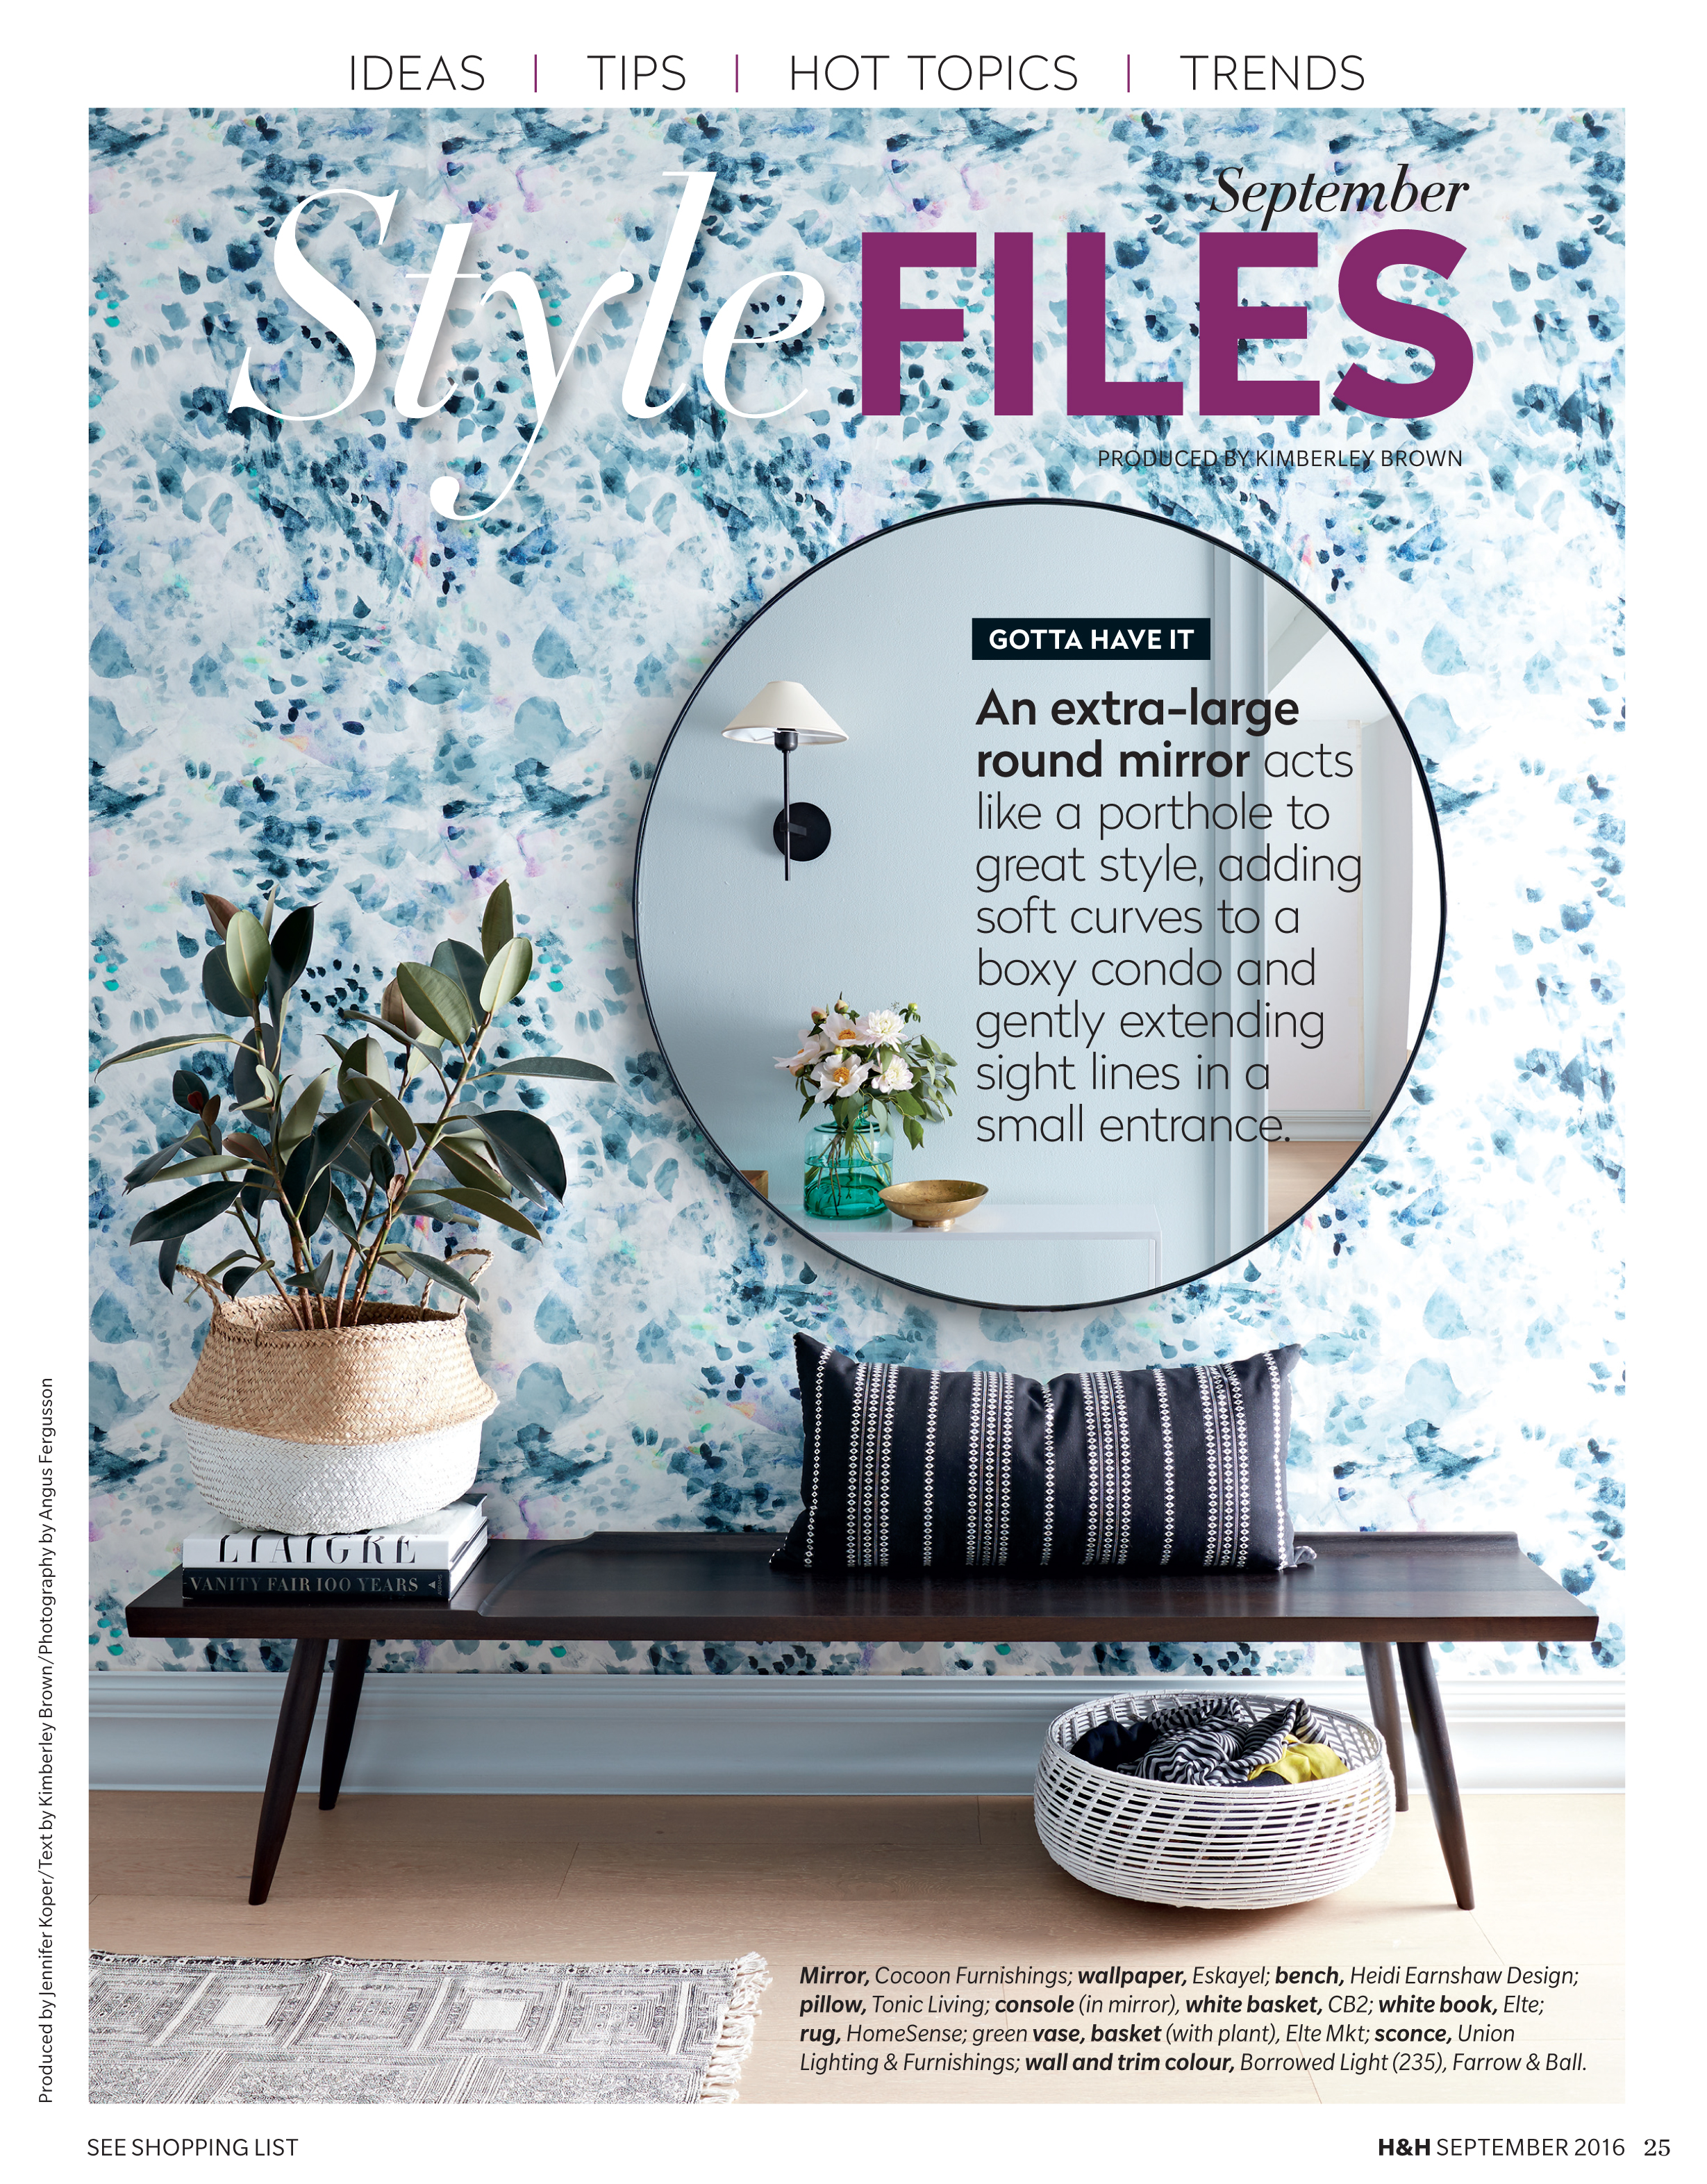 In the Press - Designs by Briana DeVoe have been featured in House & Home Magazine, WSJ Magazine, Design Milk, Design Sponge, Martha Stewart Living and Elle.HR